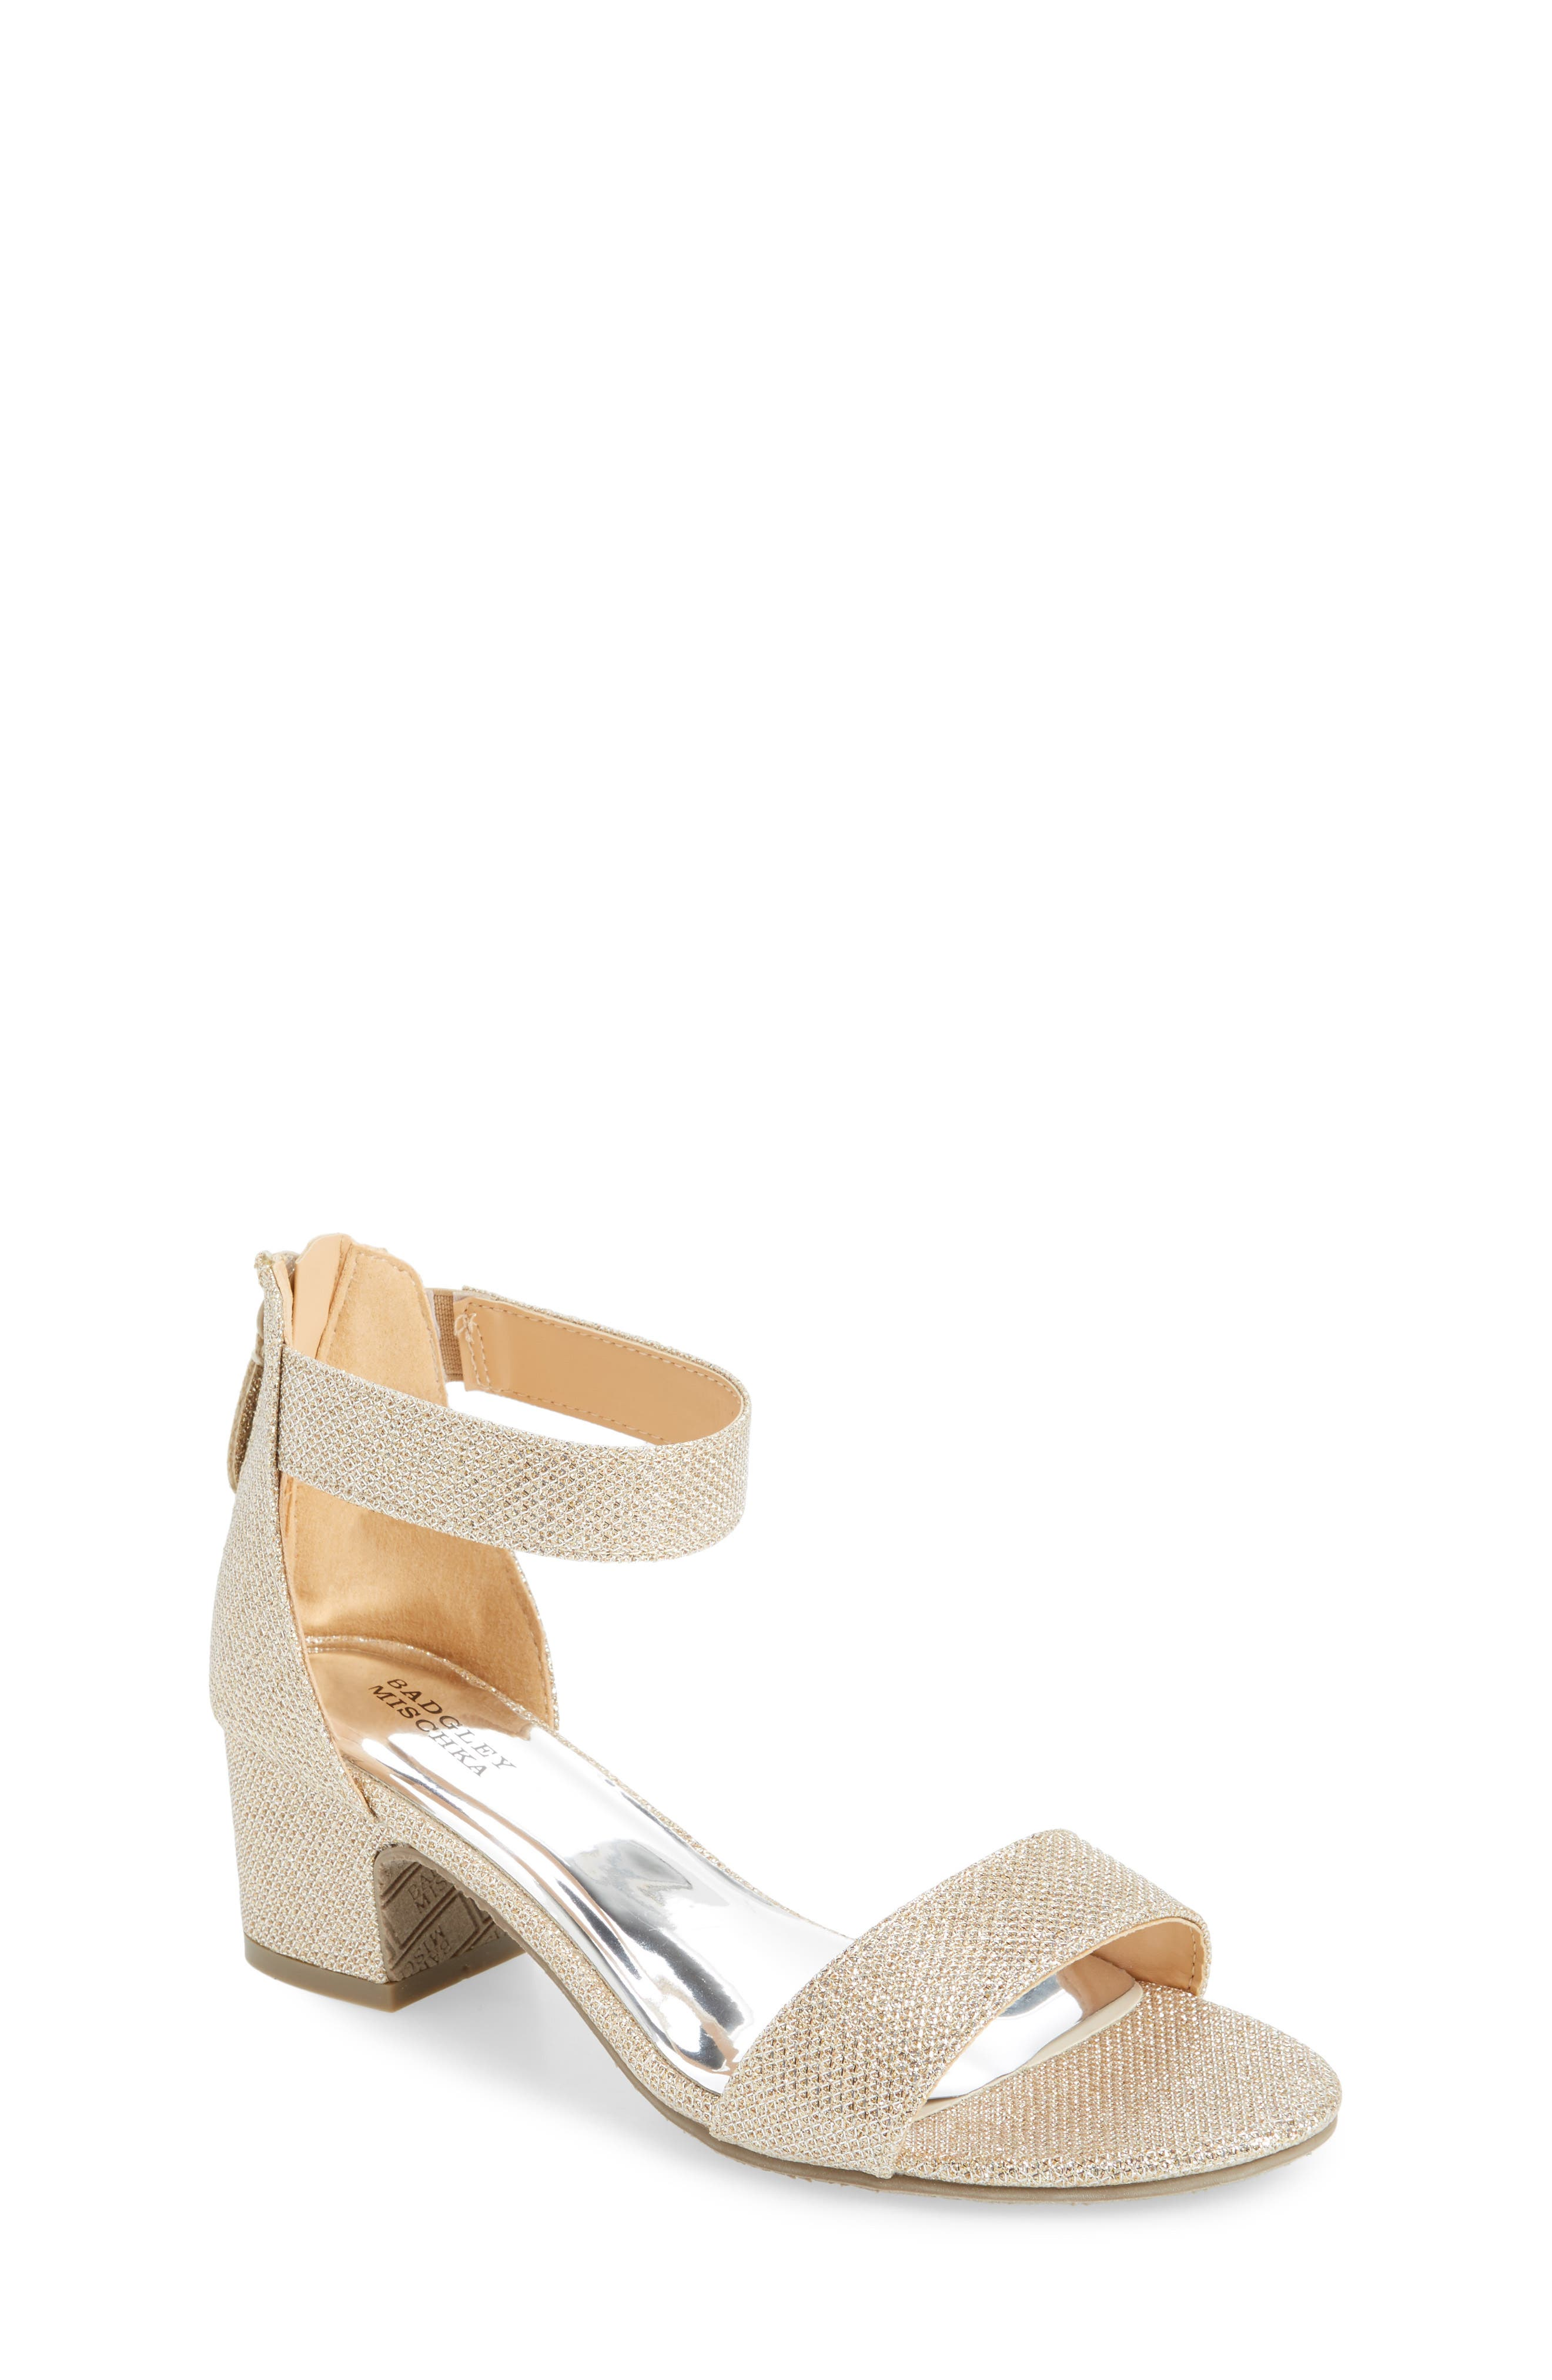 Badgley Mischka Pernia Velma Shimmer Sandal, Main, color, LIGHT GOLD SHIMMER